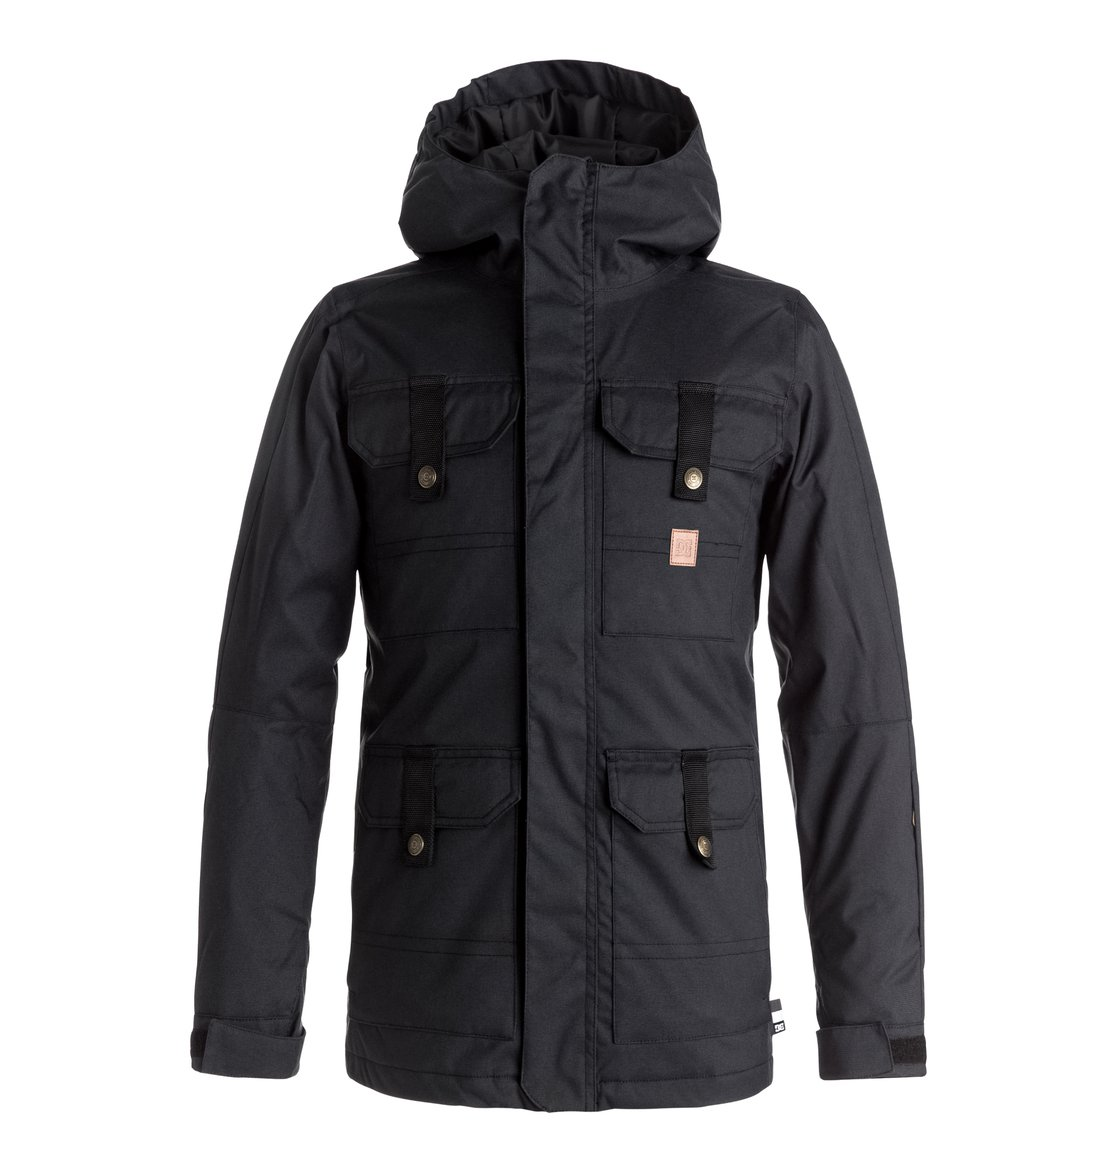 Servo - Snow Jacket от DC Shoes